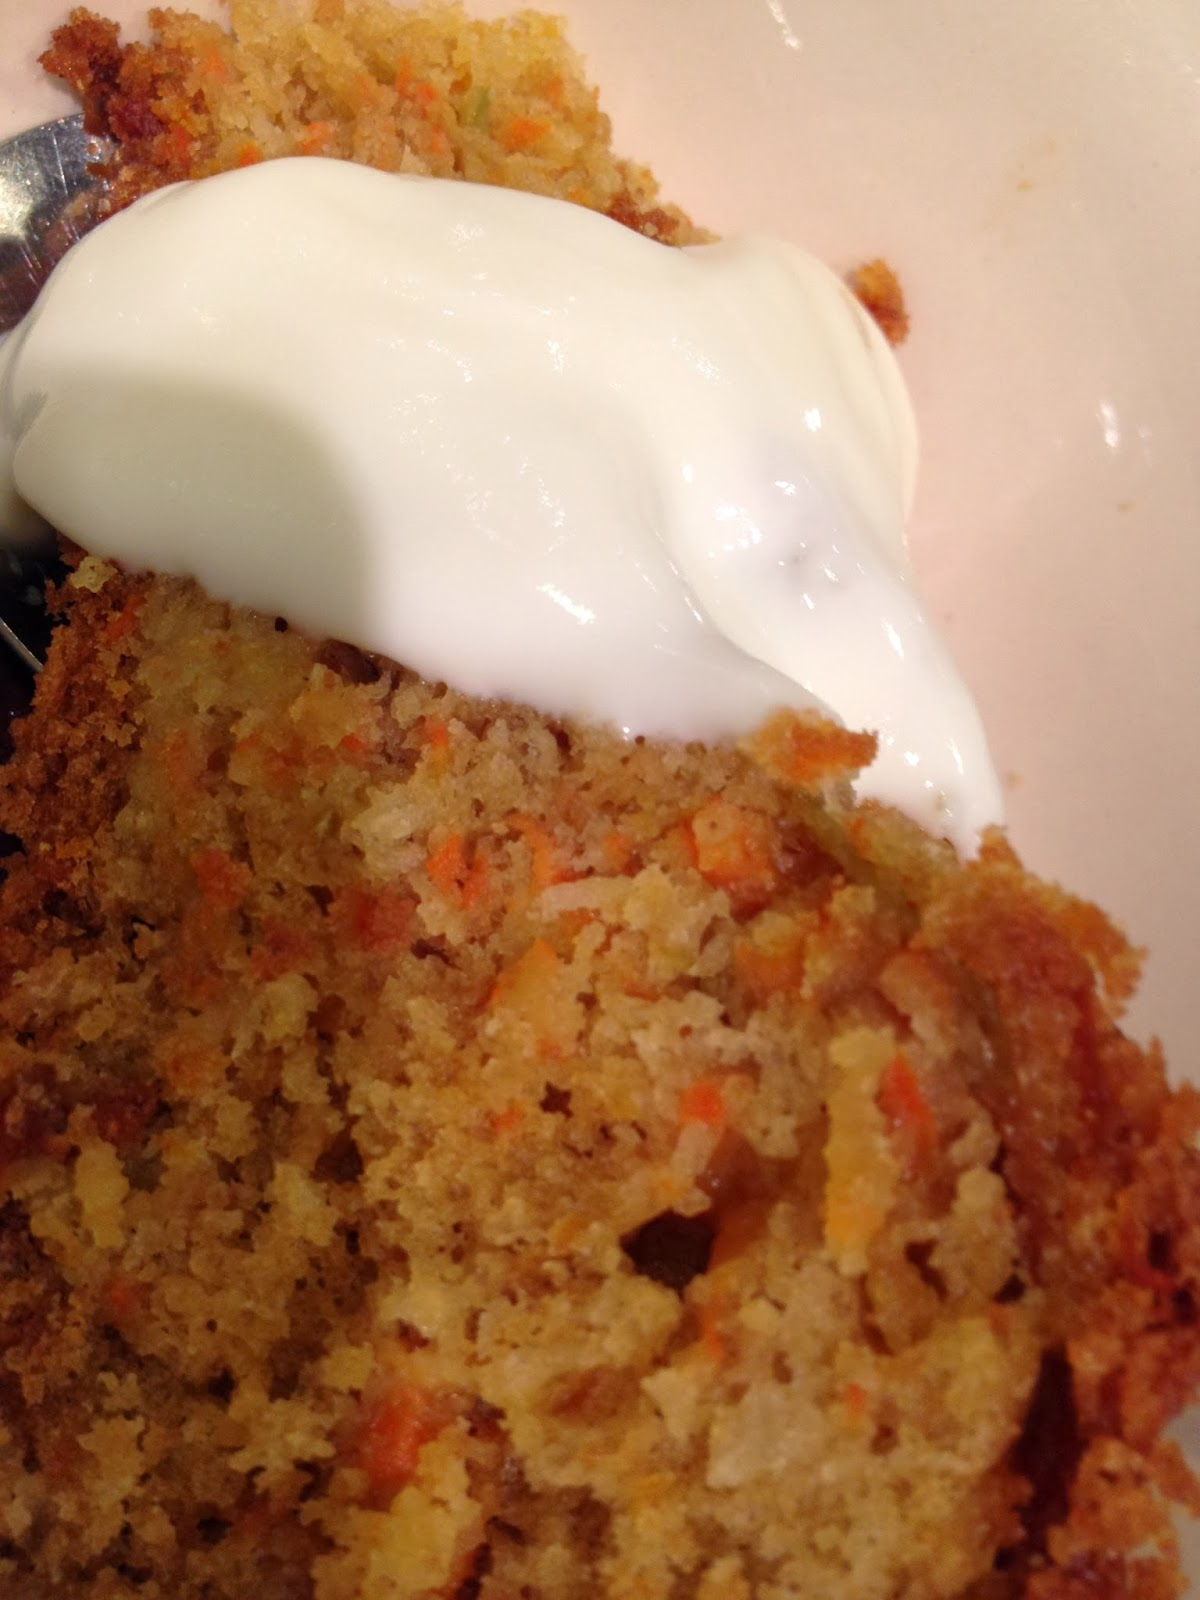 Ceredigion Calling - Carrot, apple & coconut cake with ginger syrup